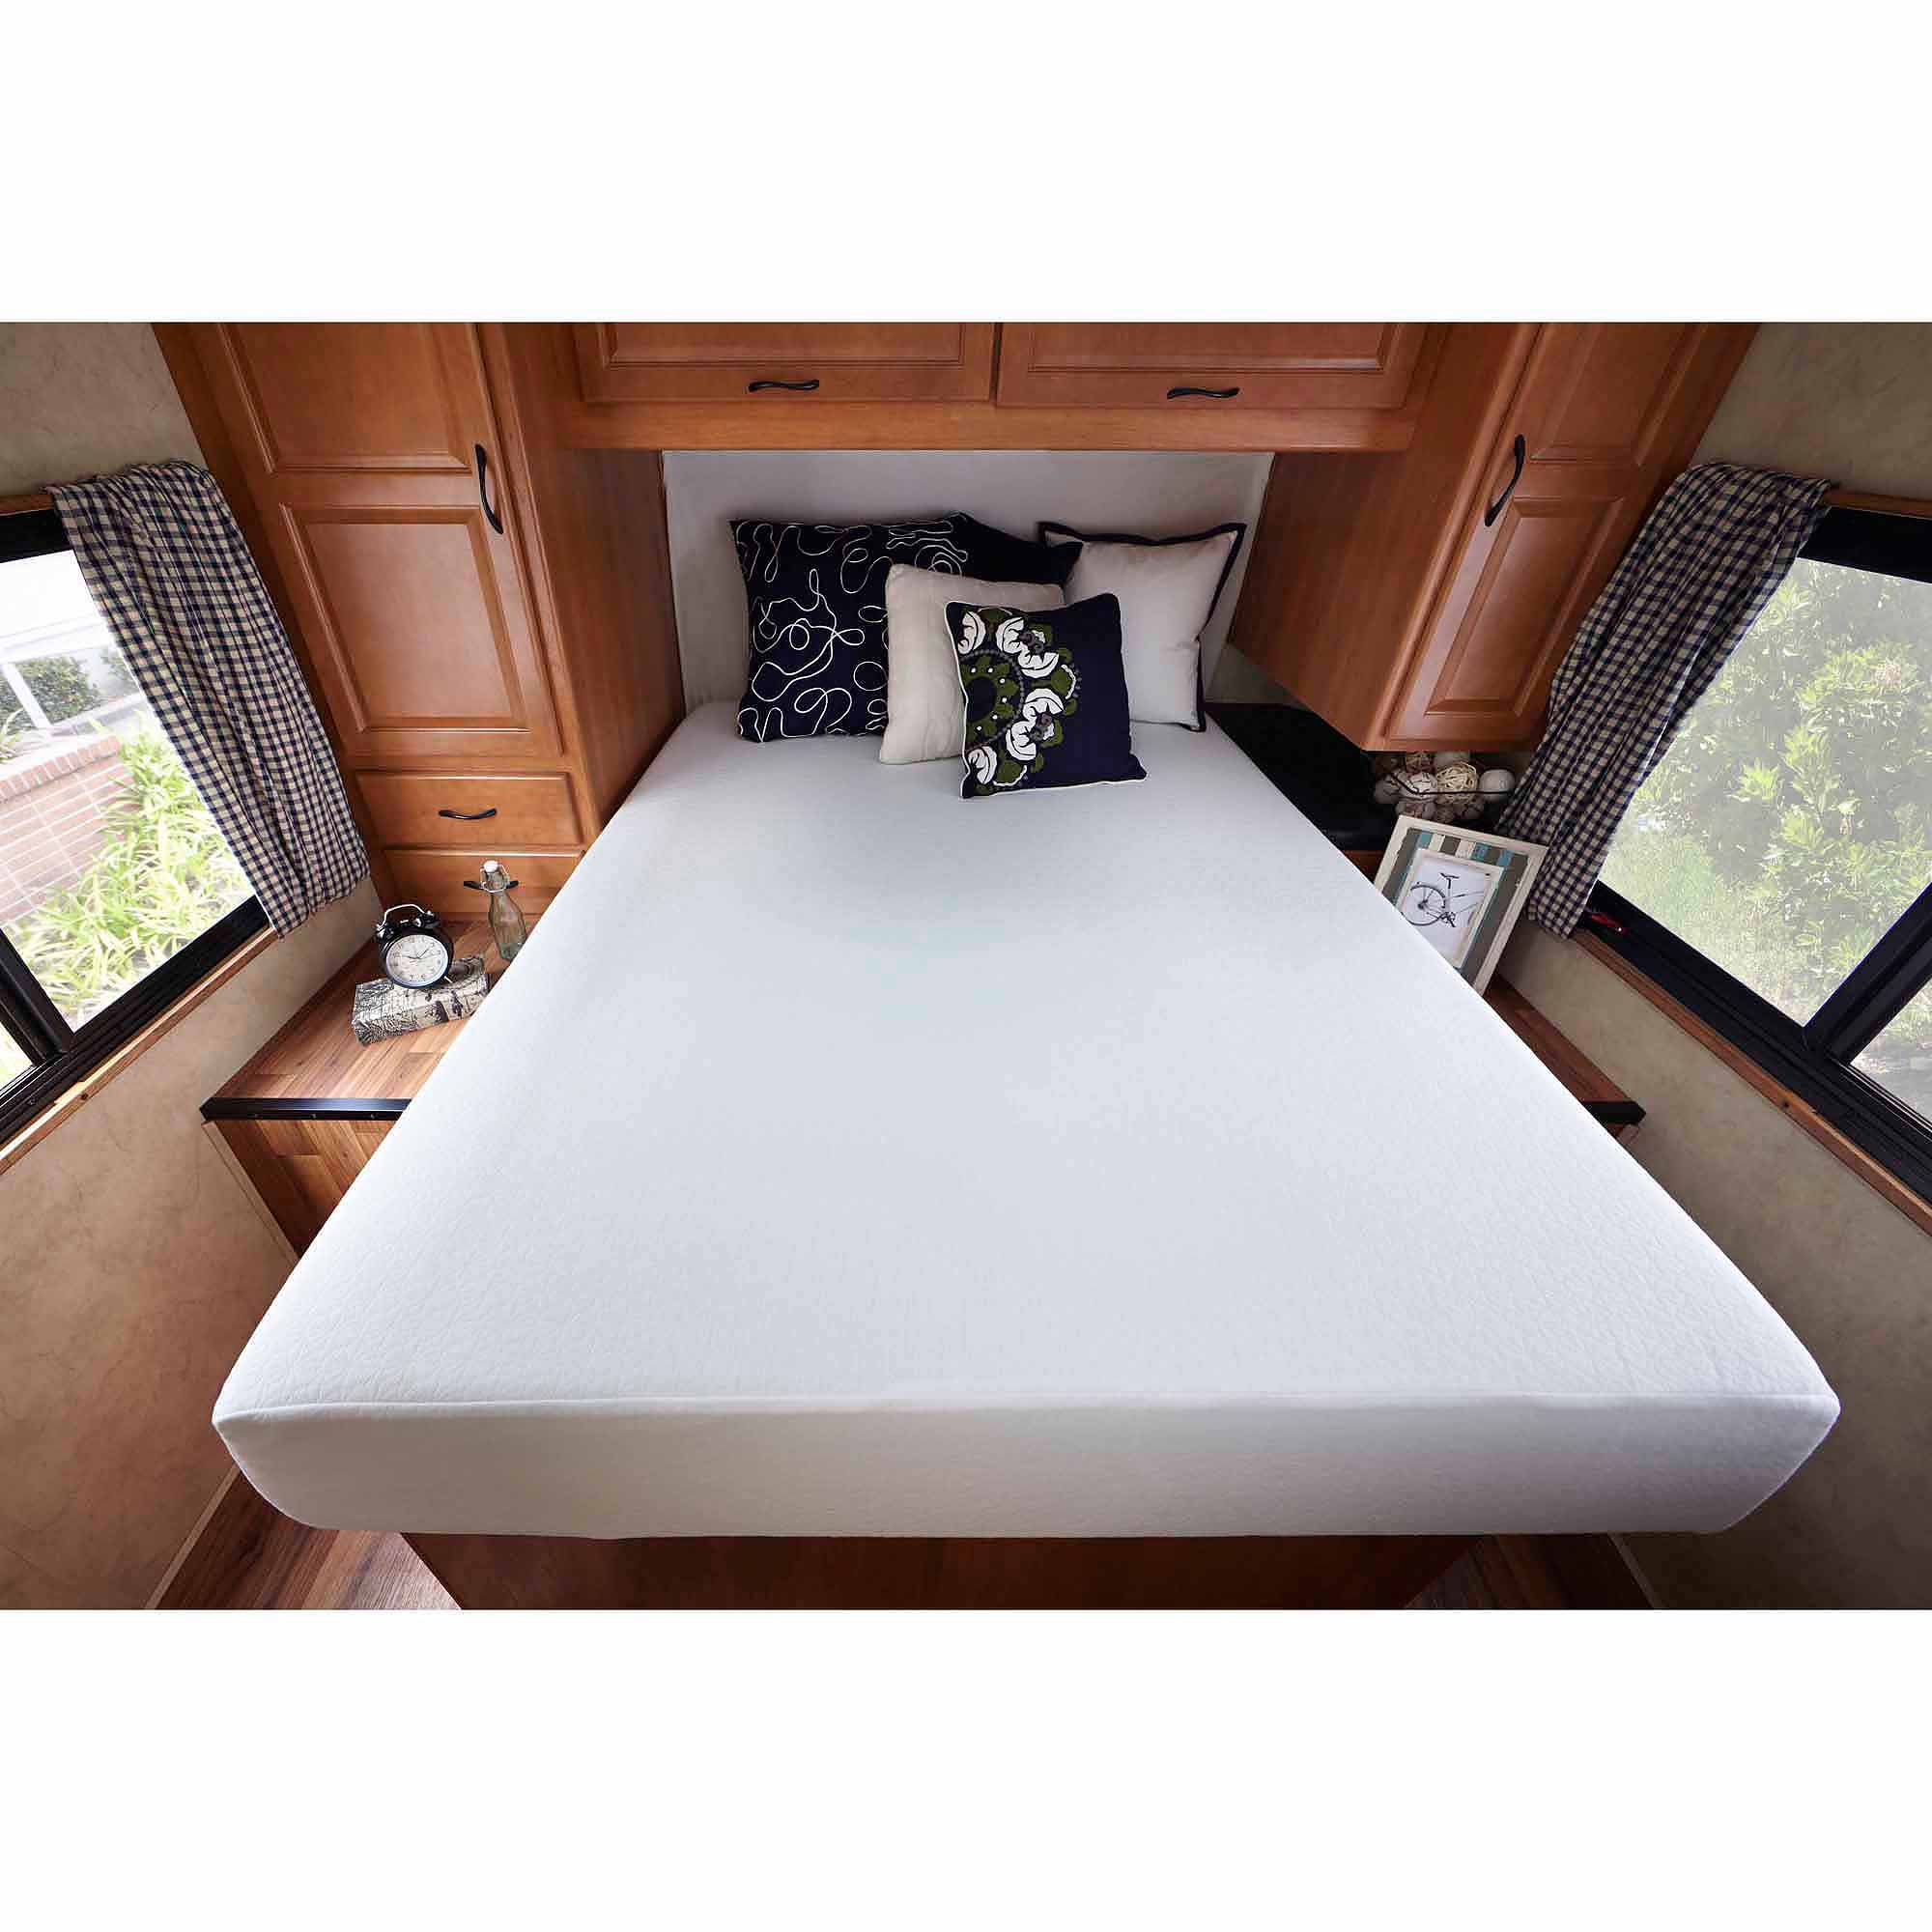 mesmerizing short size mattress large rveen photo costco rv queen toppers innerspring dimensions design of